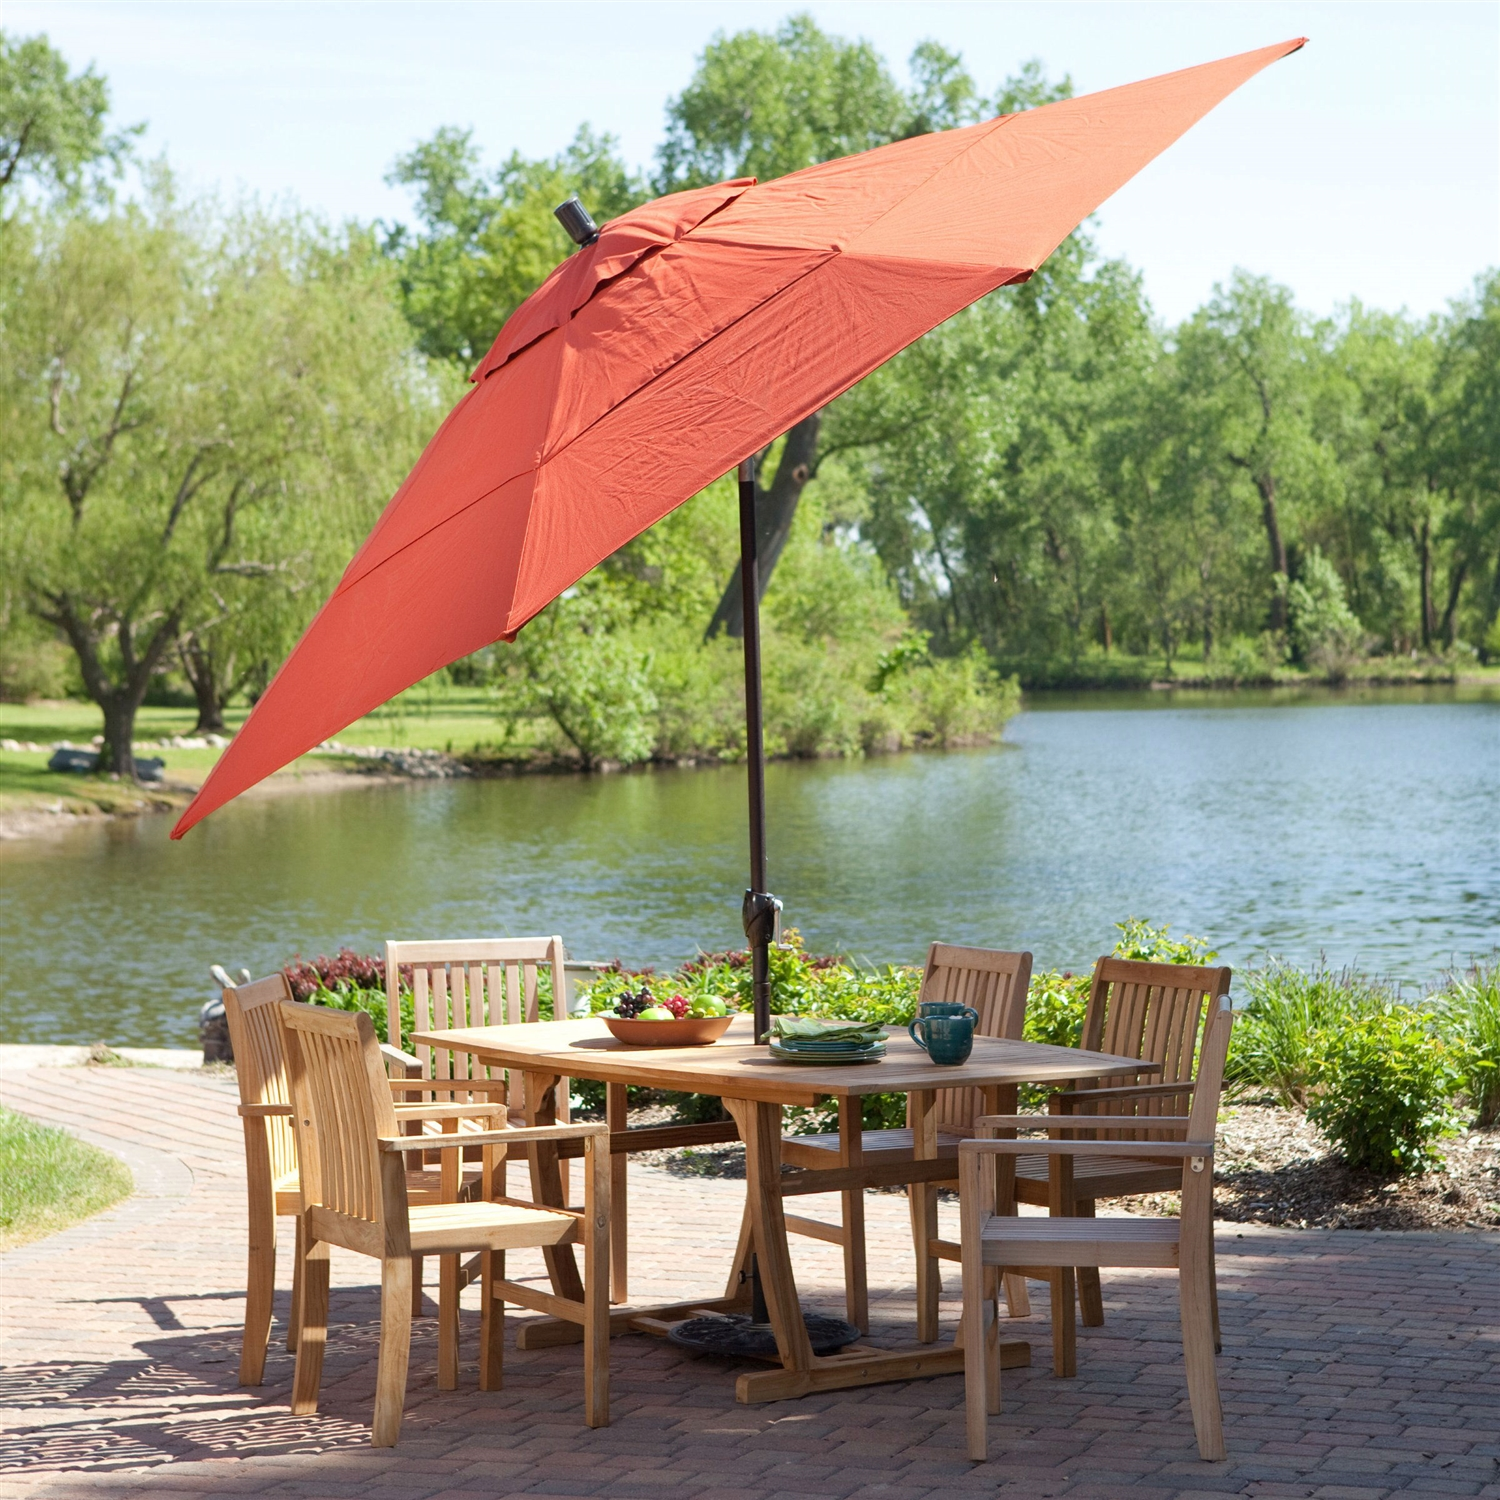 11 Ft Patio Umbrella With Brick Red Canopy And Metal Pole